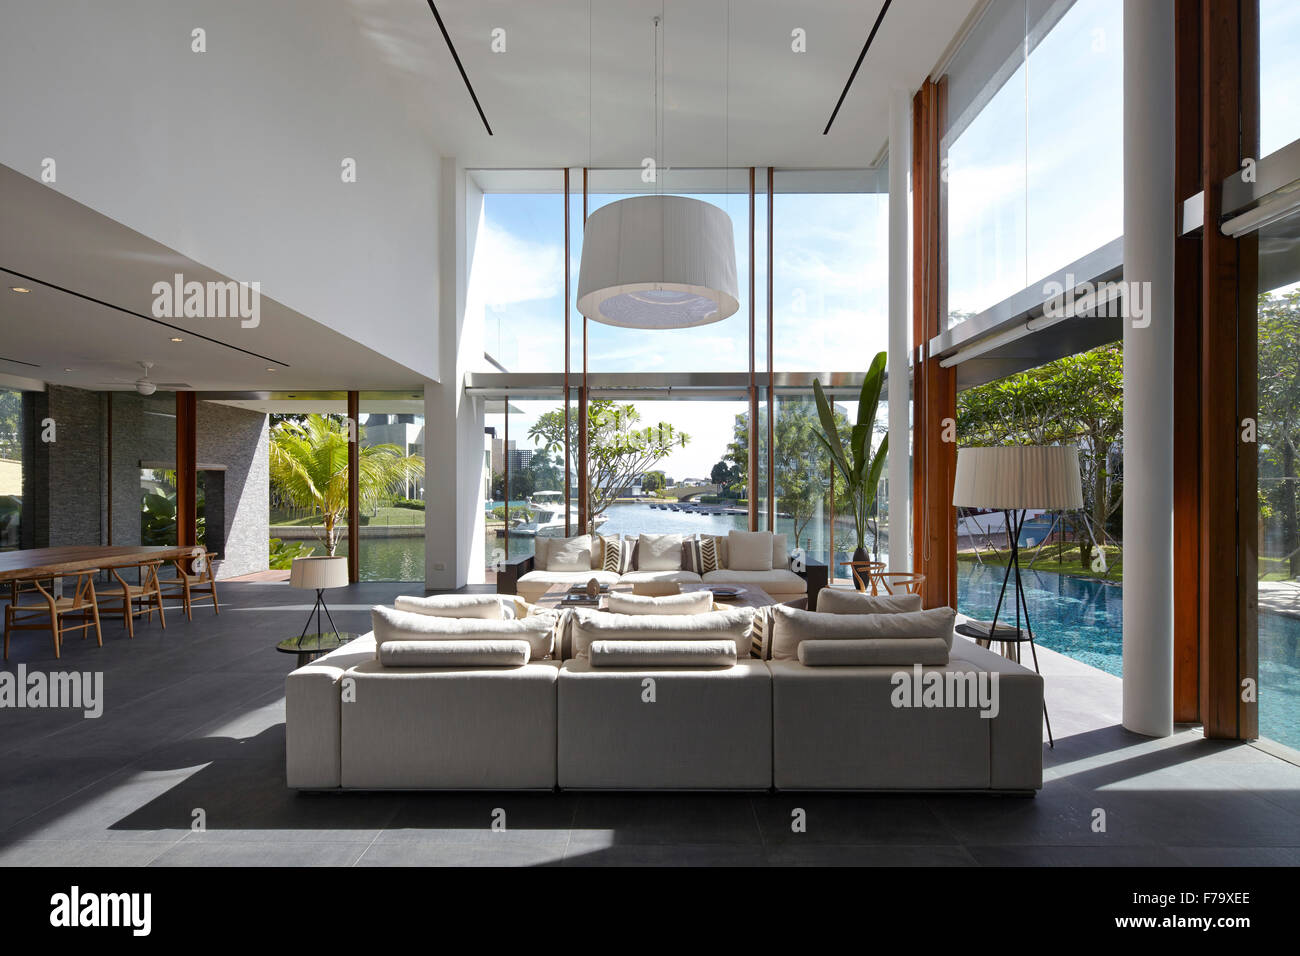 Open Plan Double Height Living Room In Cove Way House Sentosa Stock Photo Royalty Free Image